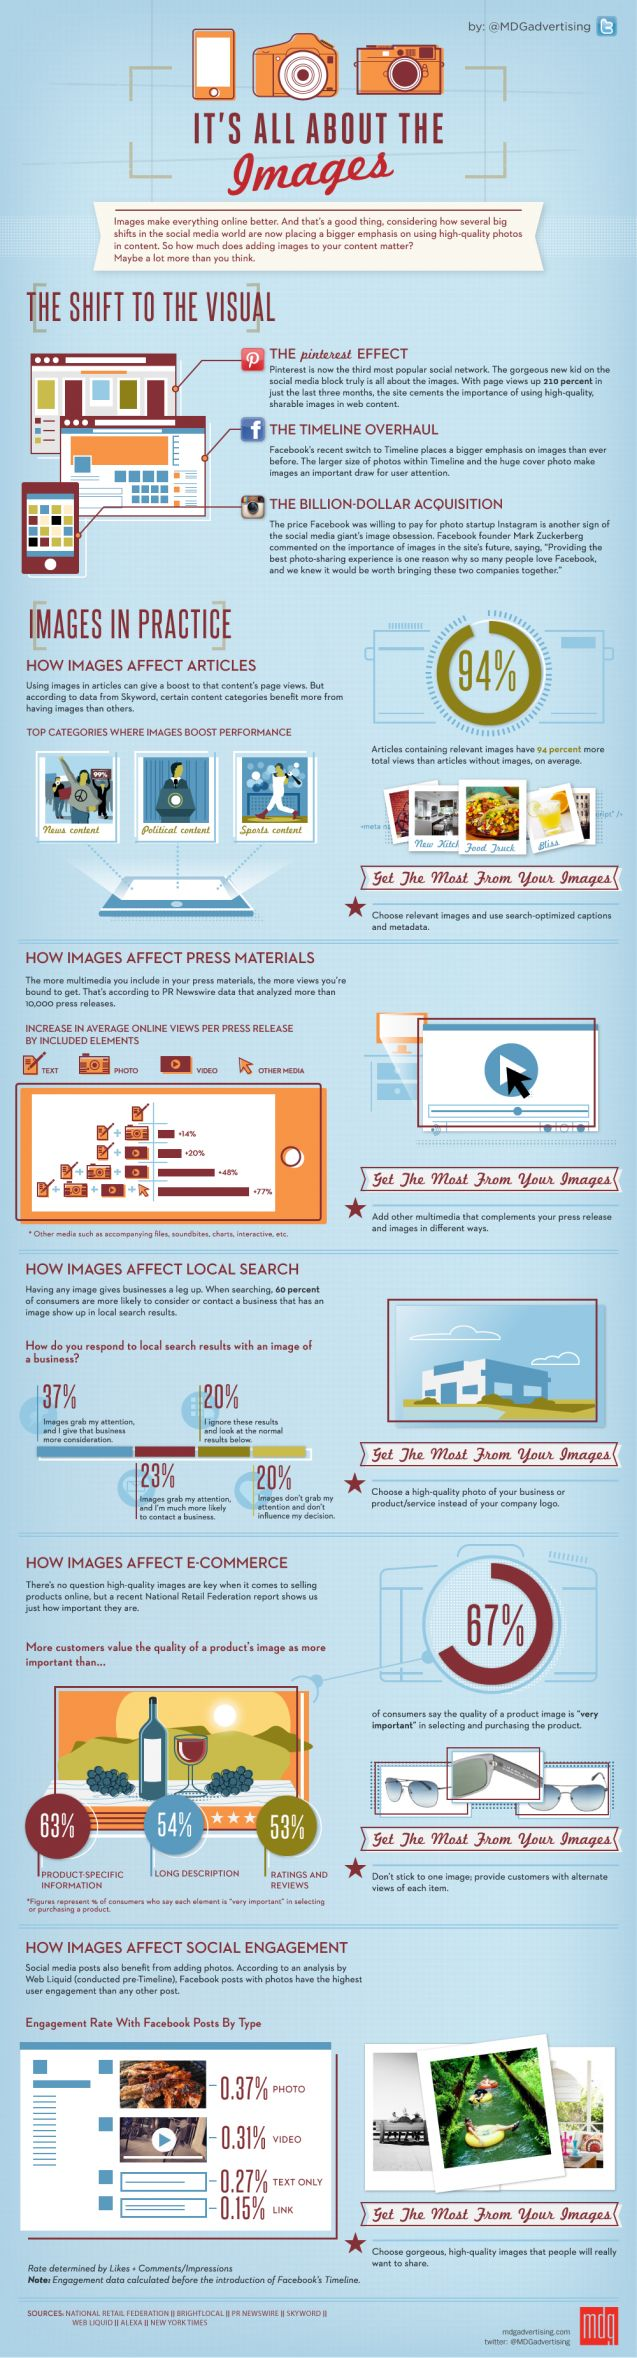 The Importance of Images [Infographic]Social Media Tips, Social Media Marketing, Web Design, Business Brand, Image, Visual Communication, Blog, Infographic, Socialmedia